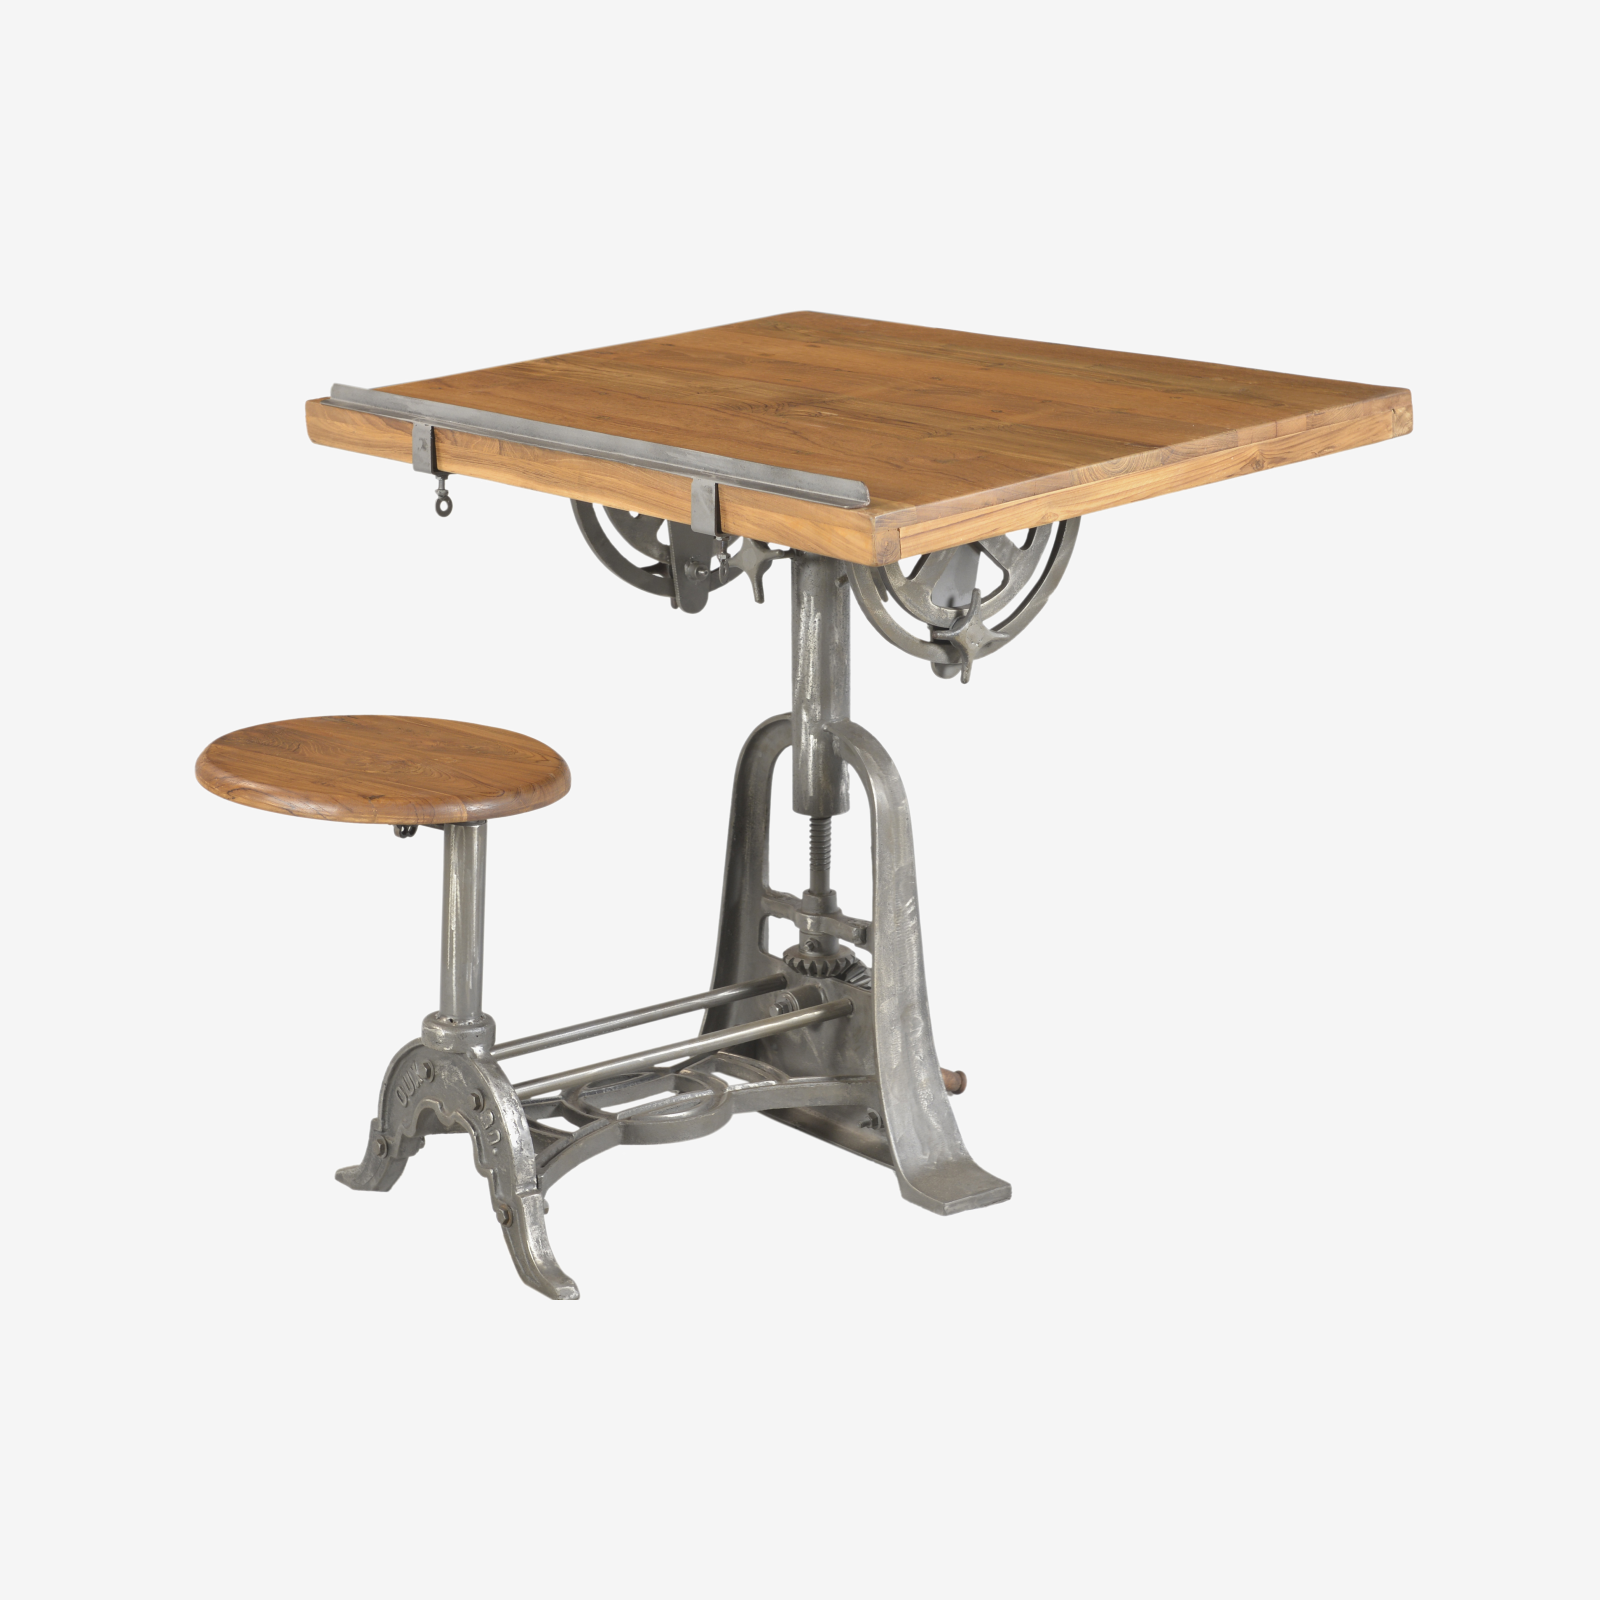 Table With Stool: Draft Table With Stool